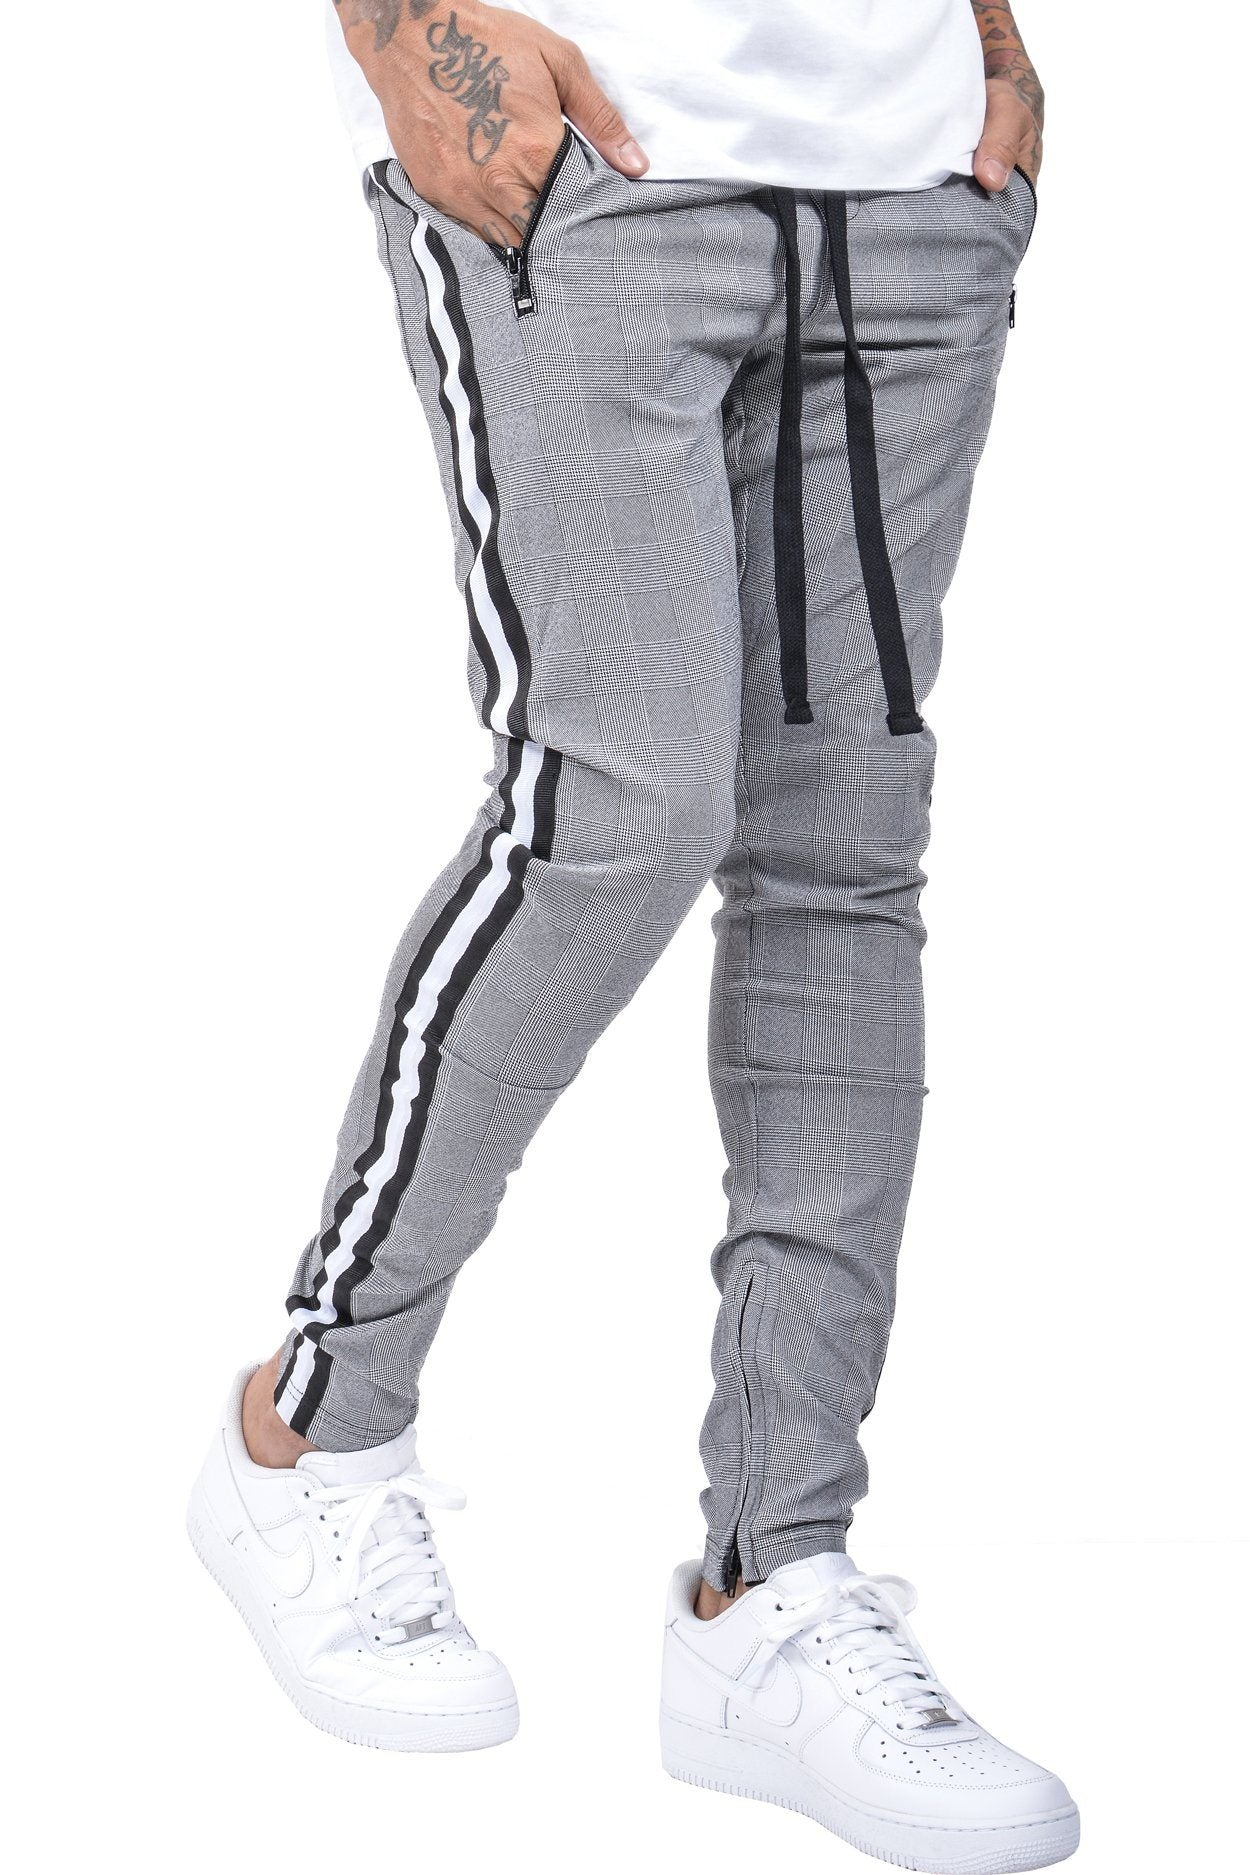 Benjamin Stripe Pants Checkered Black - PEGADOR - Dominate the Hype